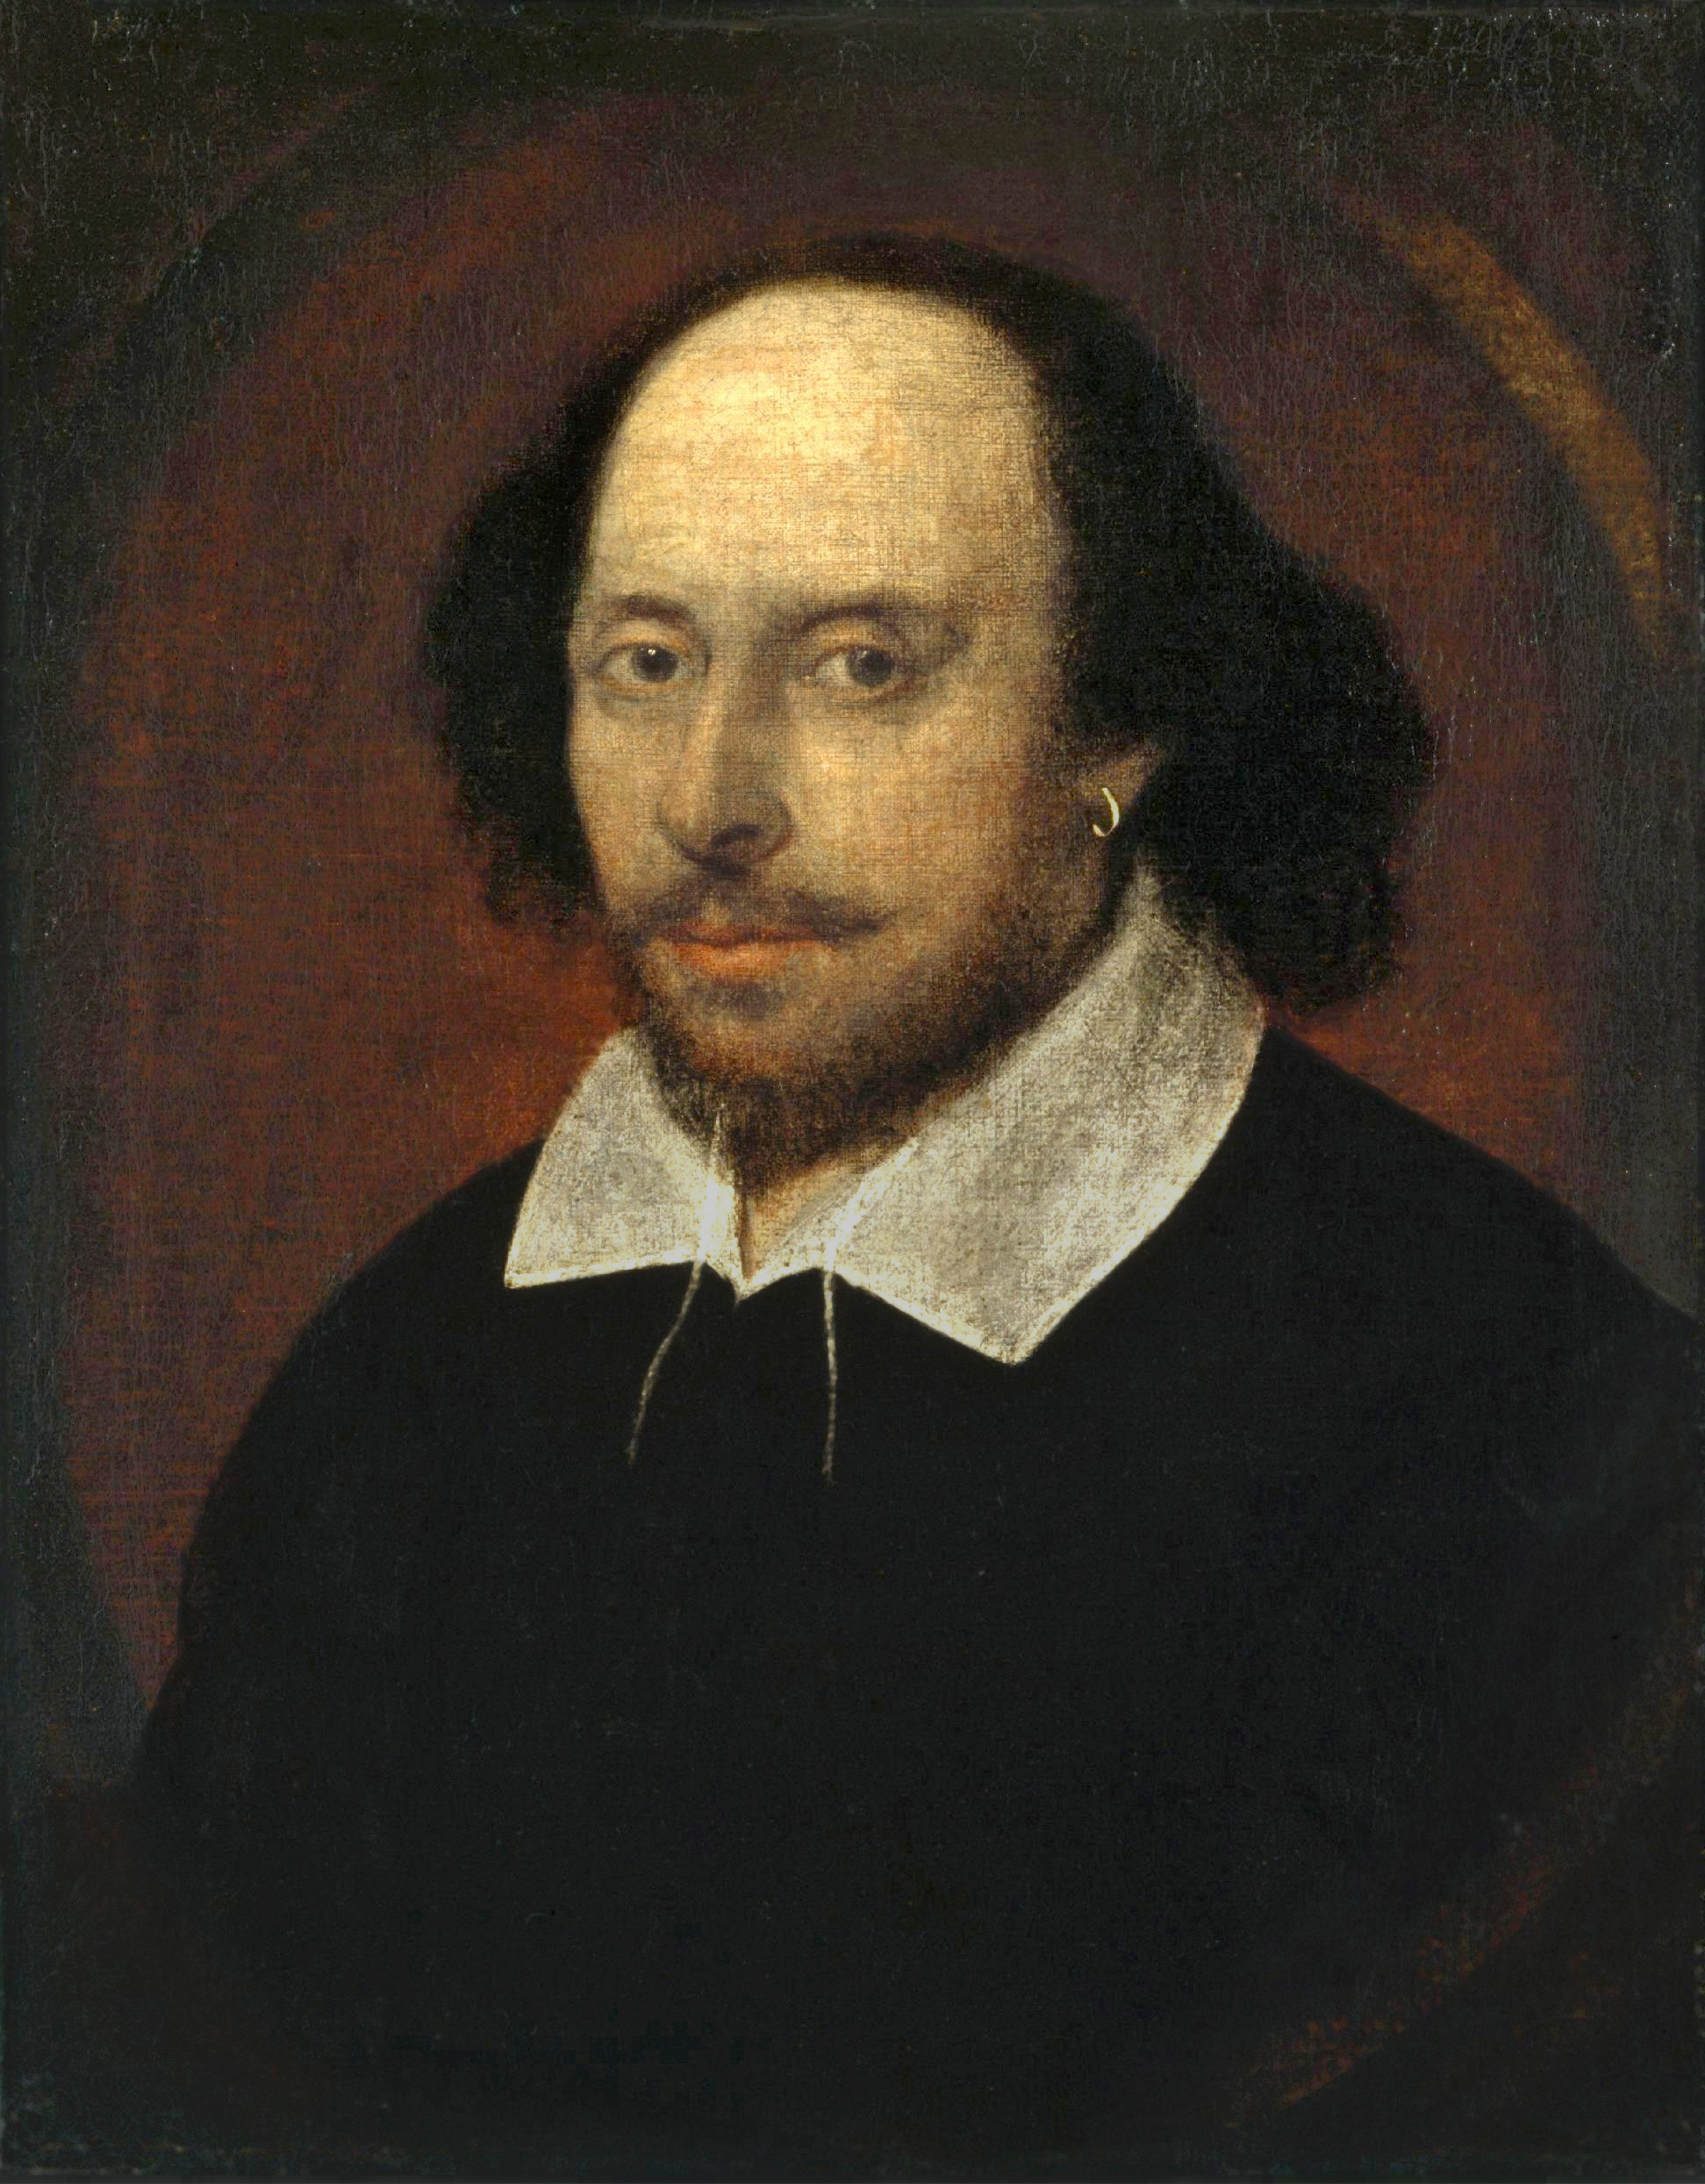 a28169430031b99c6329c8d1484dfe58 4 - Will in the World: How Shakespeare Became Shakepeare